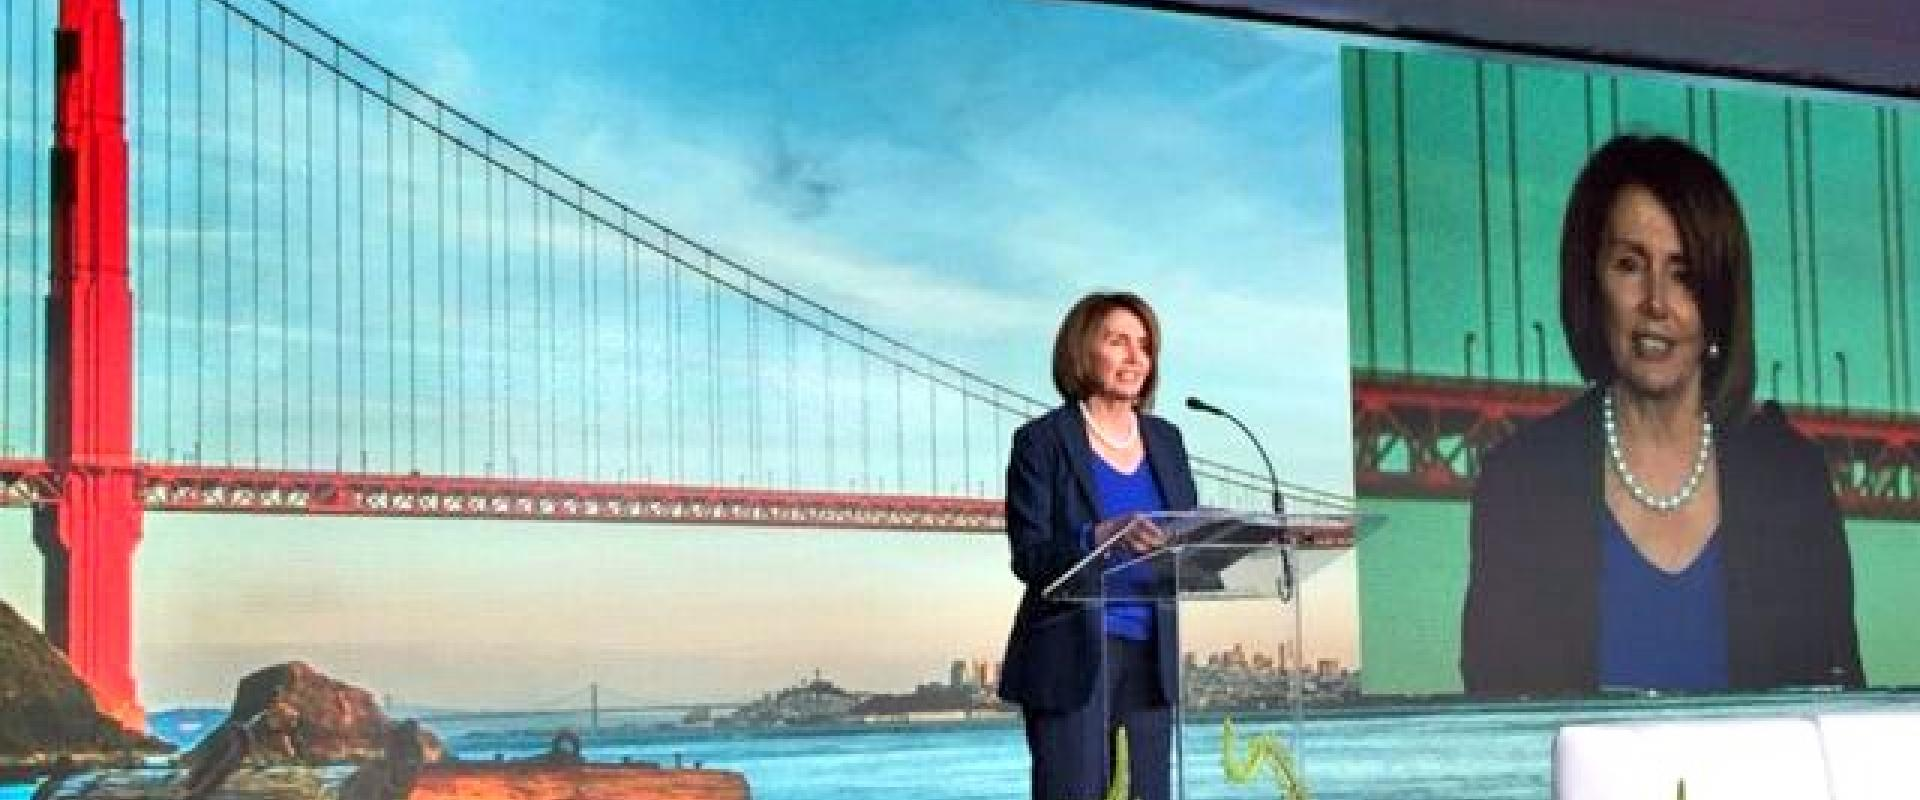 Congresswoman Pelosi joined Energy Secretary Ernest Moniz in strong support of the United States' commitment to the Mission Innovation initiative, which aims to dramatically accelerate public and private global clean energy innovation. Energy leaders from